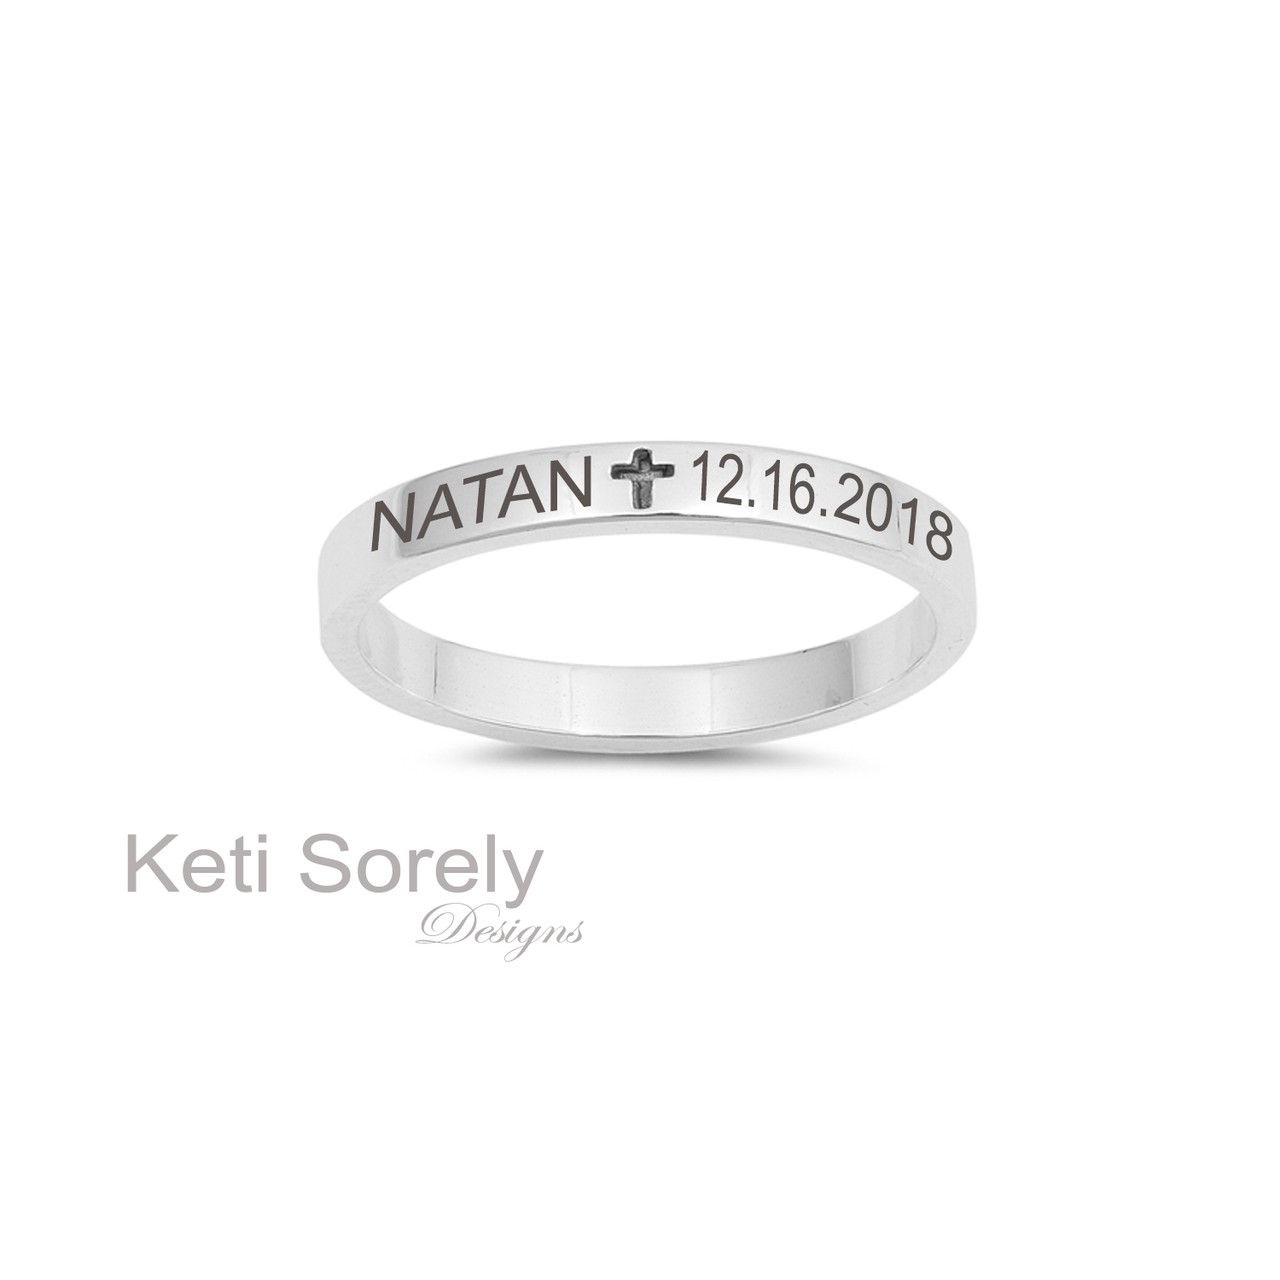 7851a901aeaa3 Engraved Cross Band Ring - Choose Your Metal